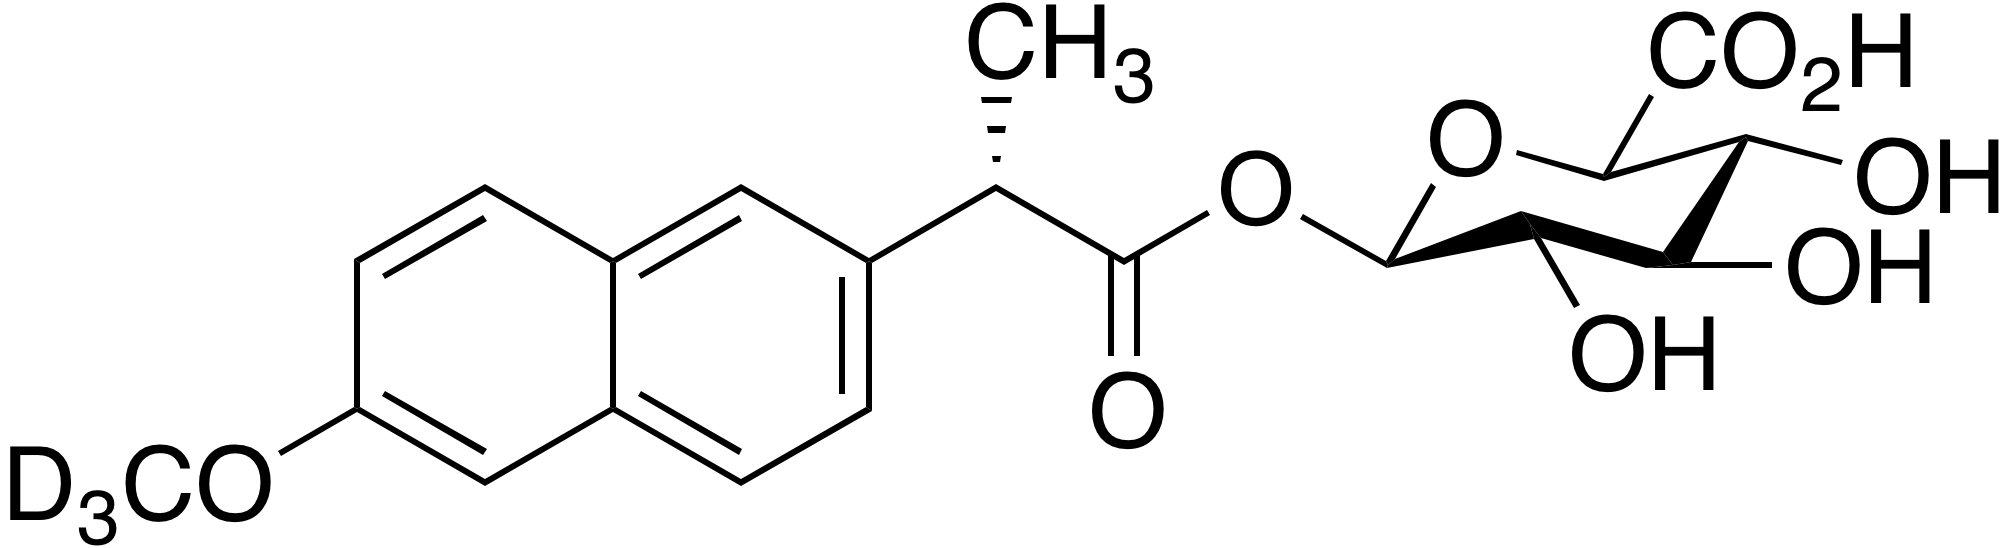 (S)-Naproxen-d<sub>3</sub> acyl-β-D-glucuronide